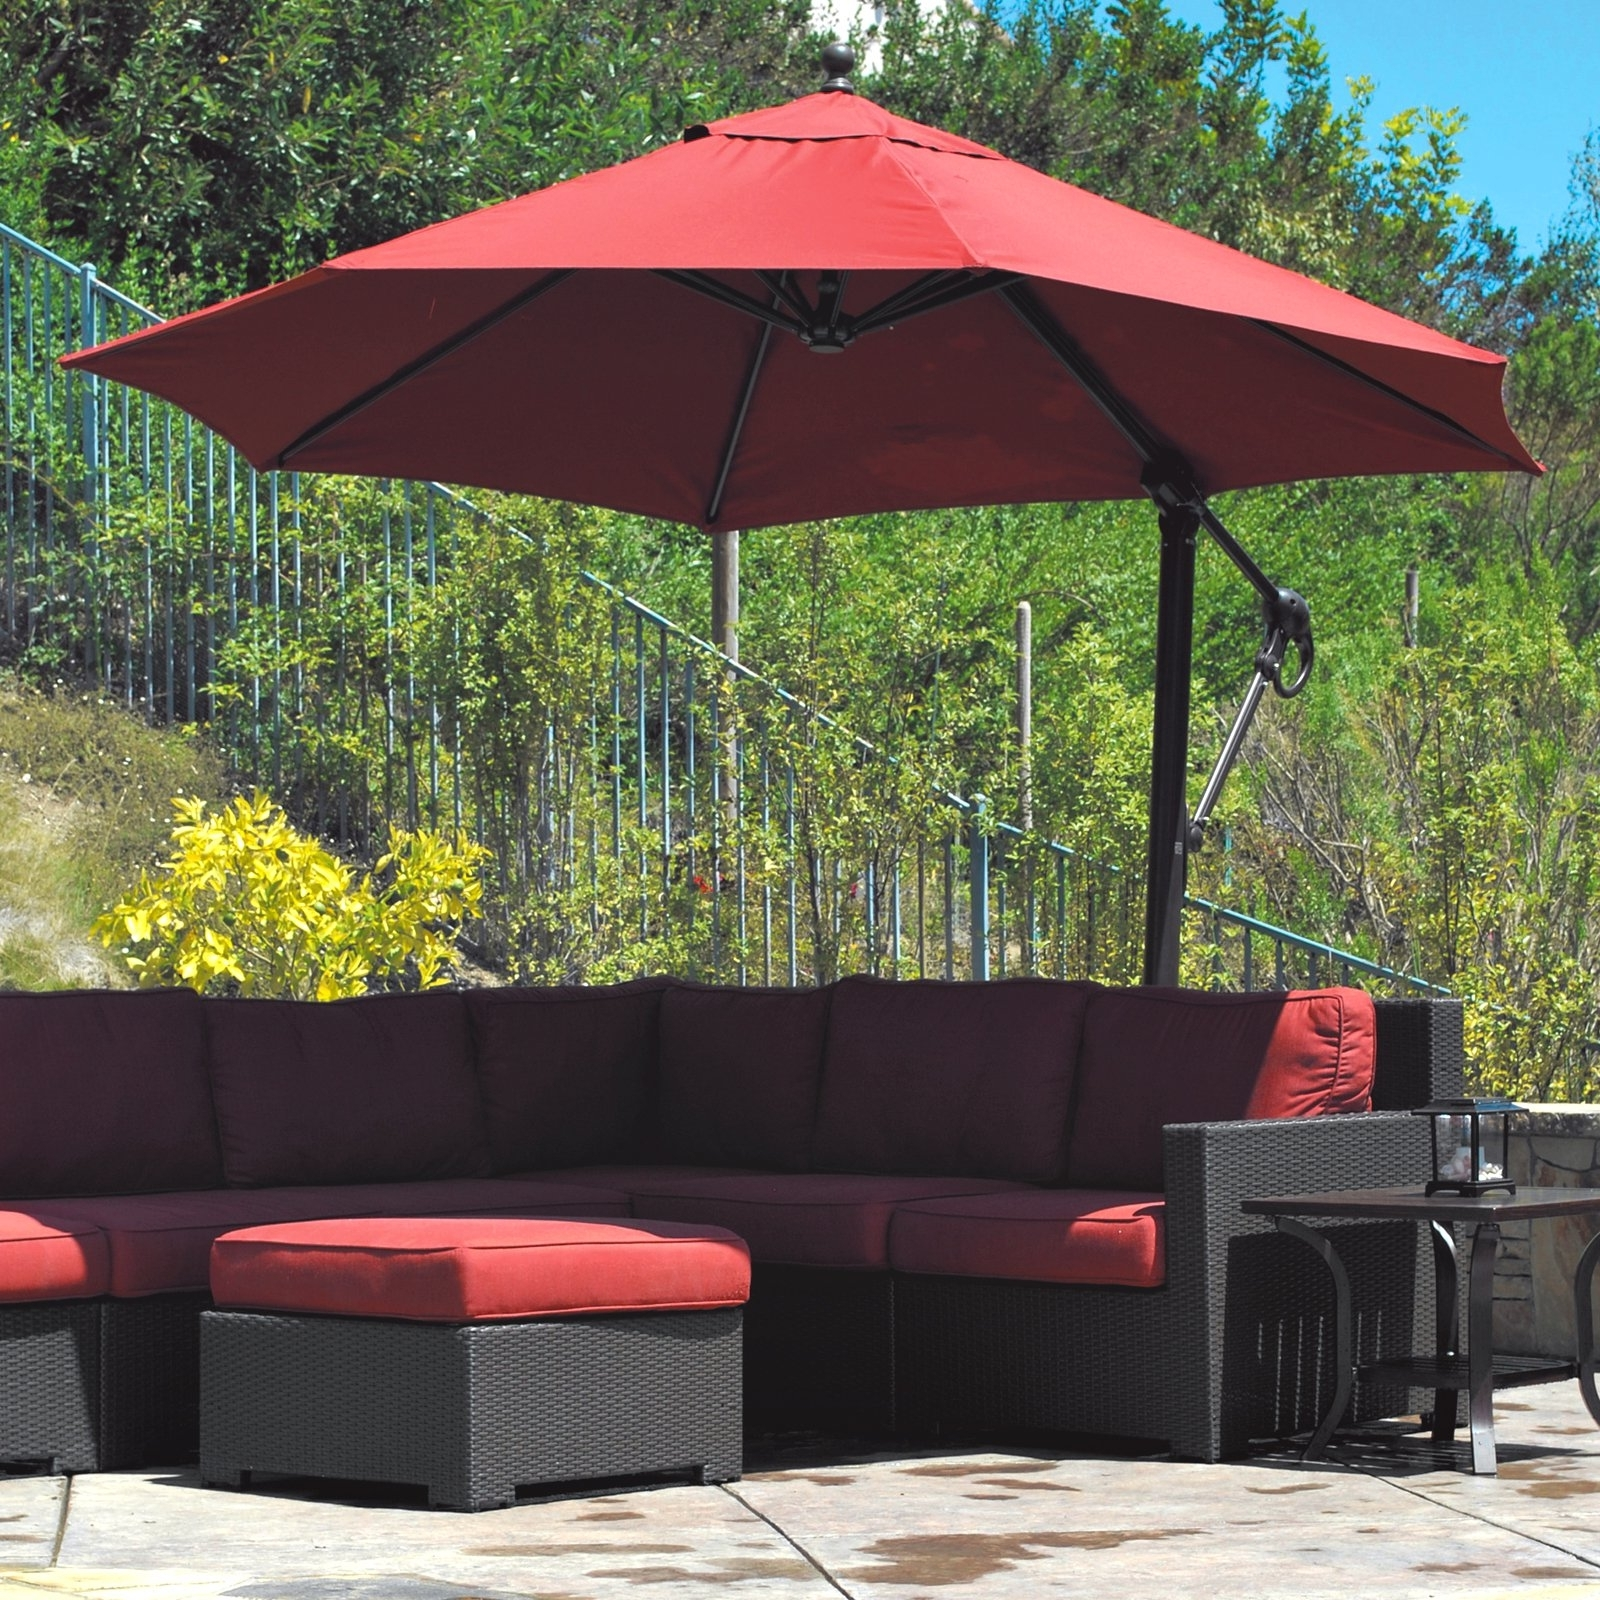 Best Offset Patio Umbrellas — Wilson Home Ideas : Outdoor Offset For Most Recently Released Hanging Offset Patio Umbrellas (Gallery 11 of 20)